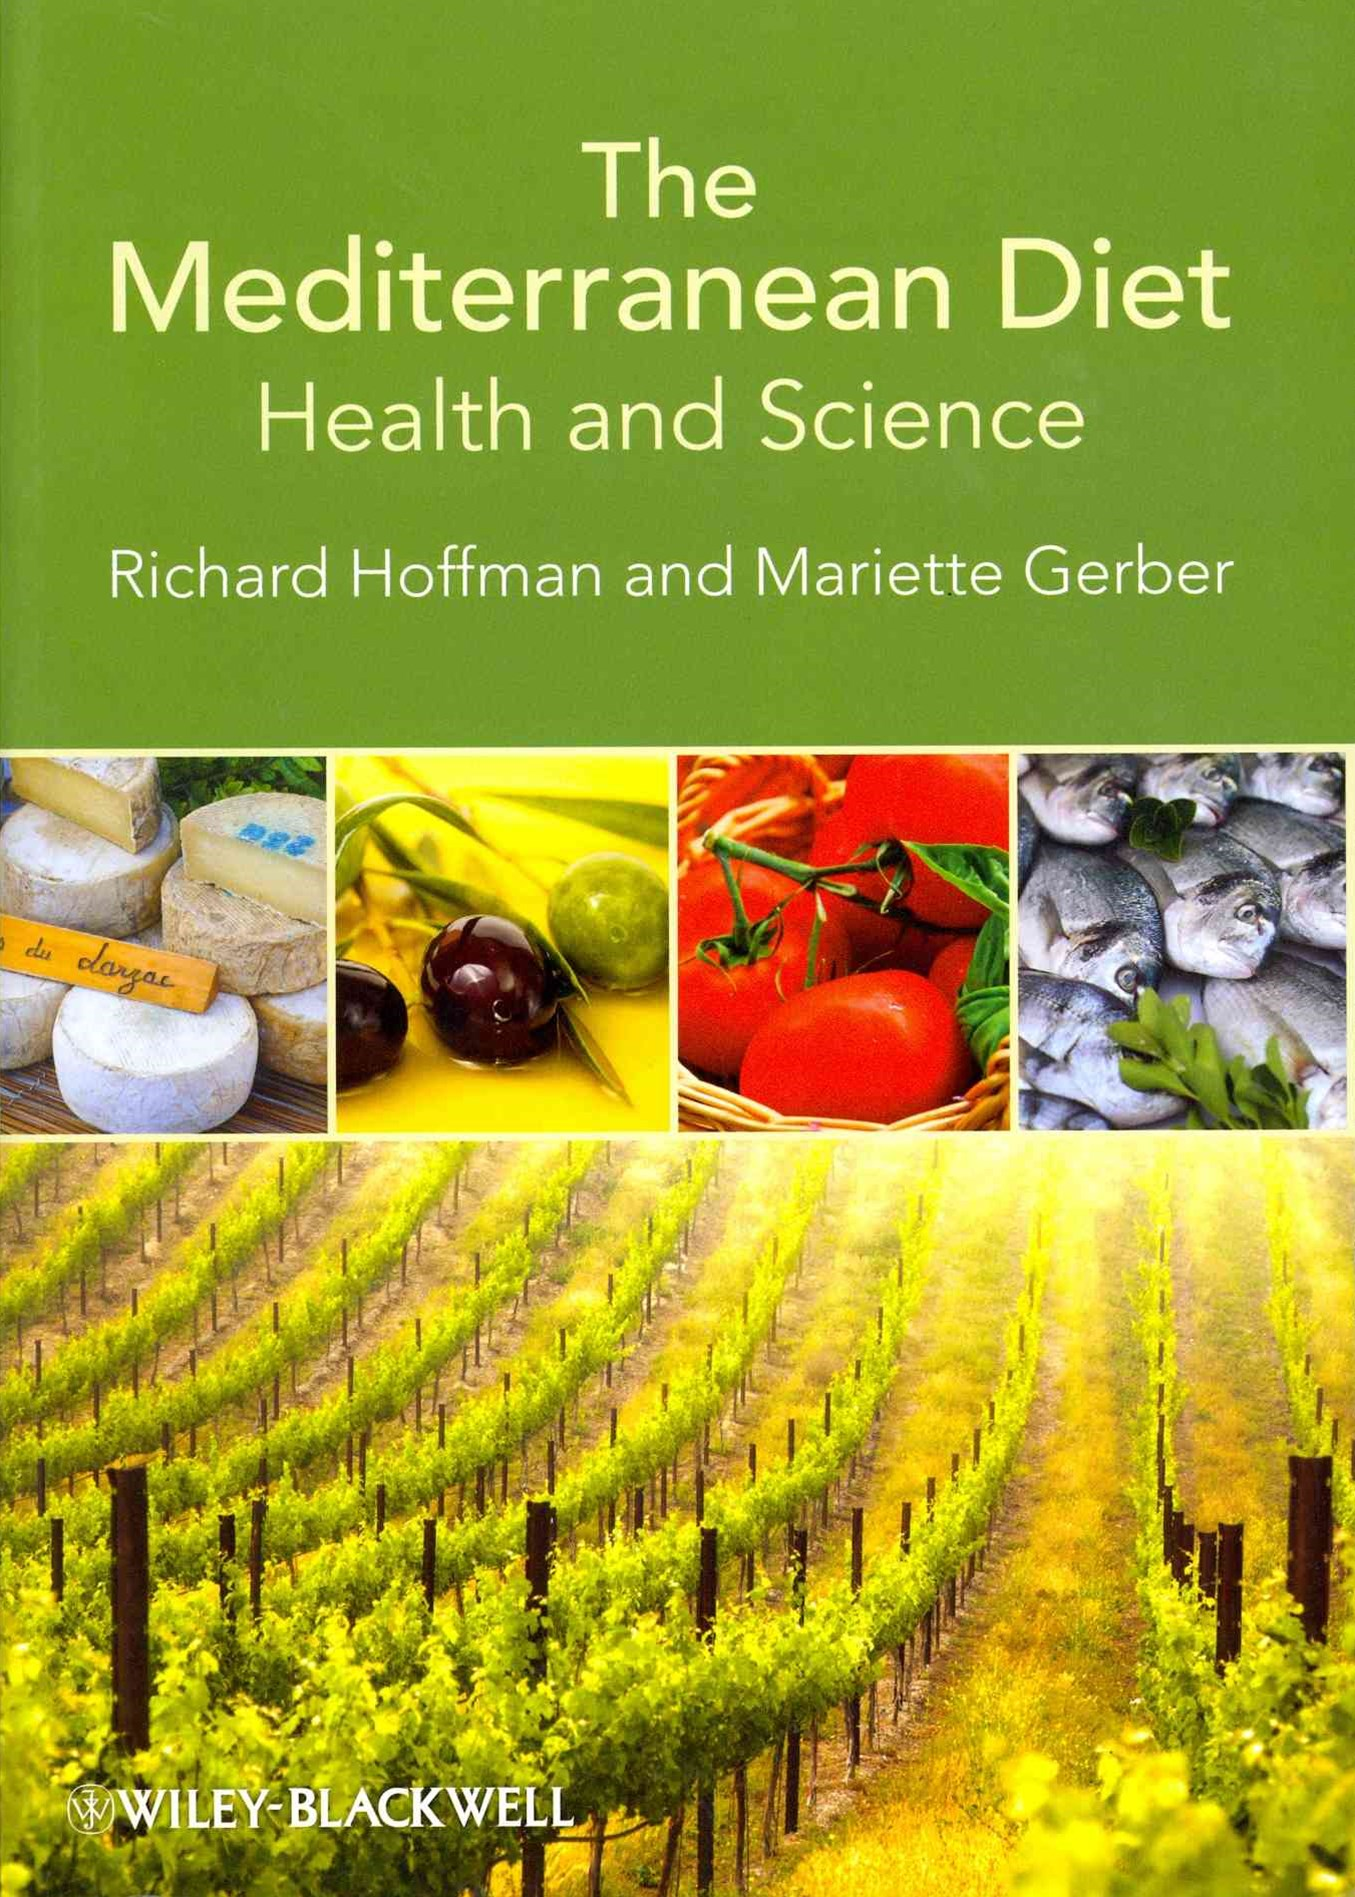 The Mediterranean Diet - Health and Science